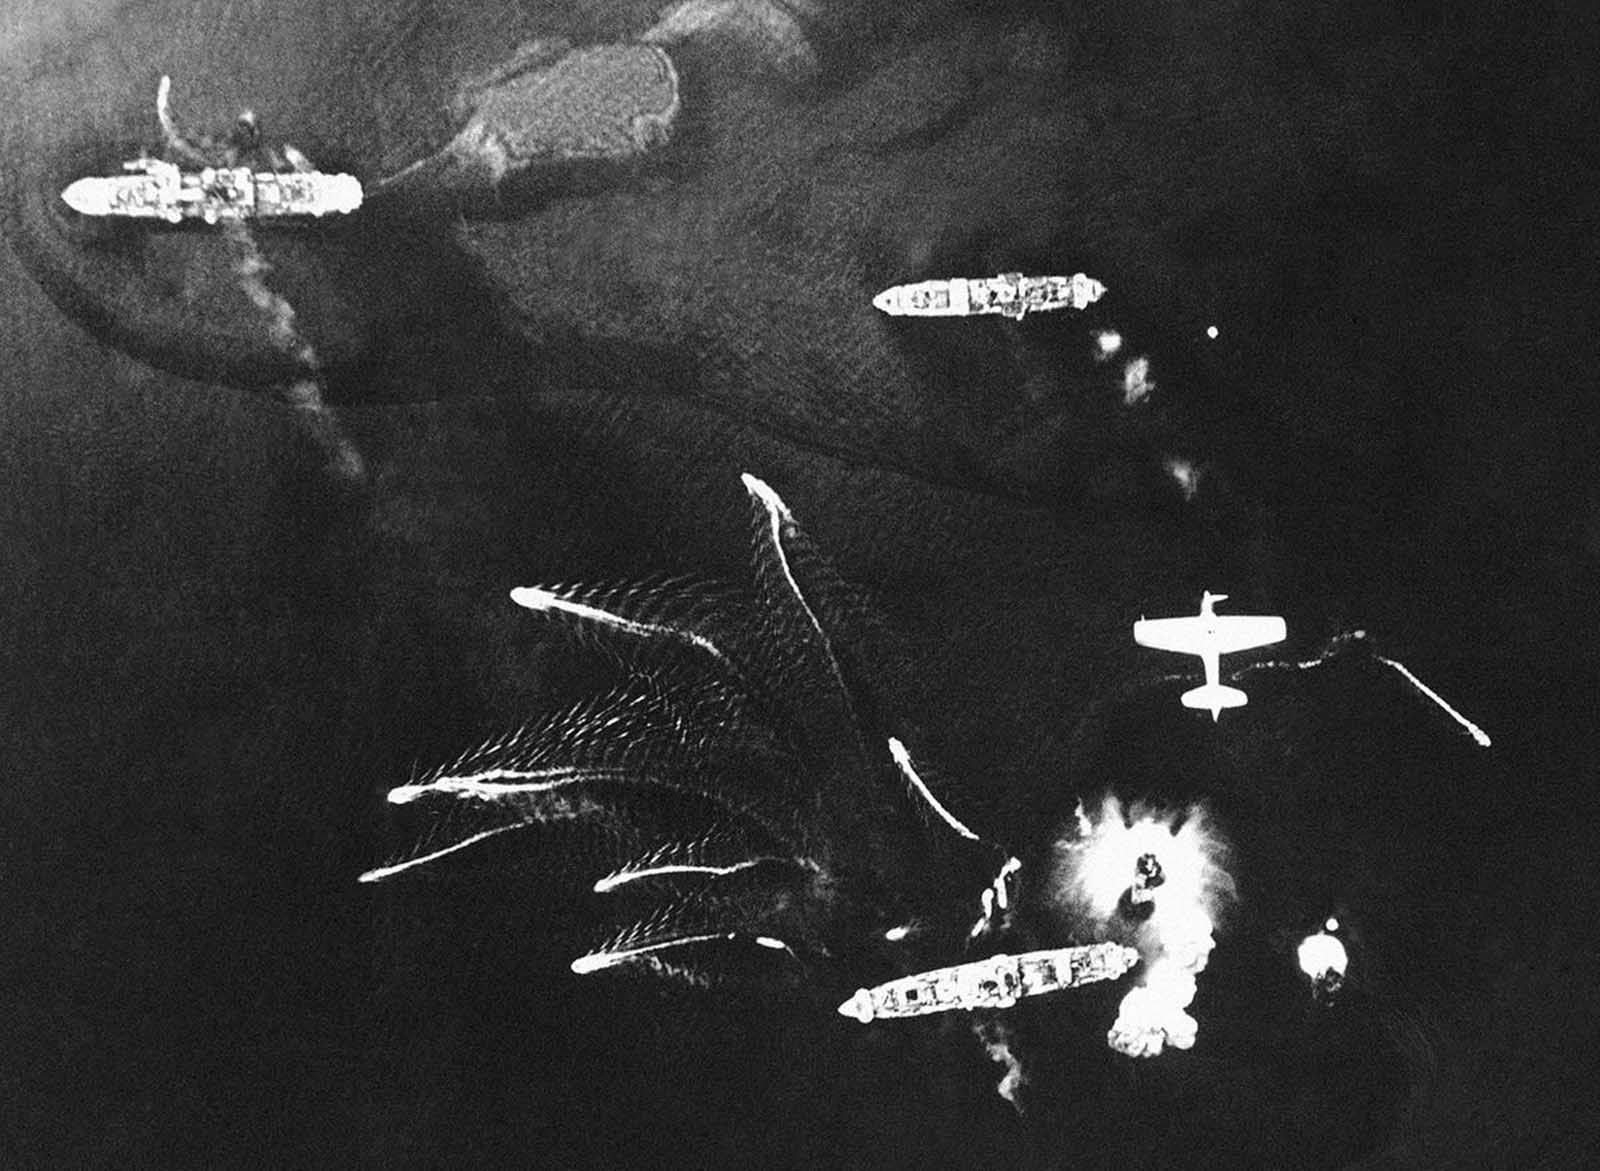 Small Japanese craft flee from larger vessels during an American aerial attack on Tonolei Harbor, Japanese base on Bougainville Island, in the Central Solomon Islands on October 9, 1943.